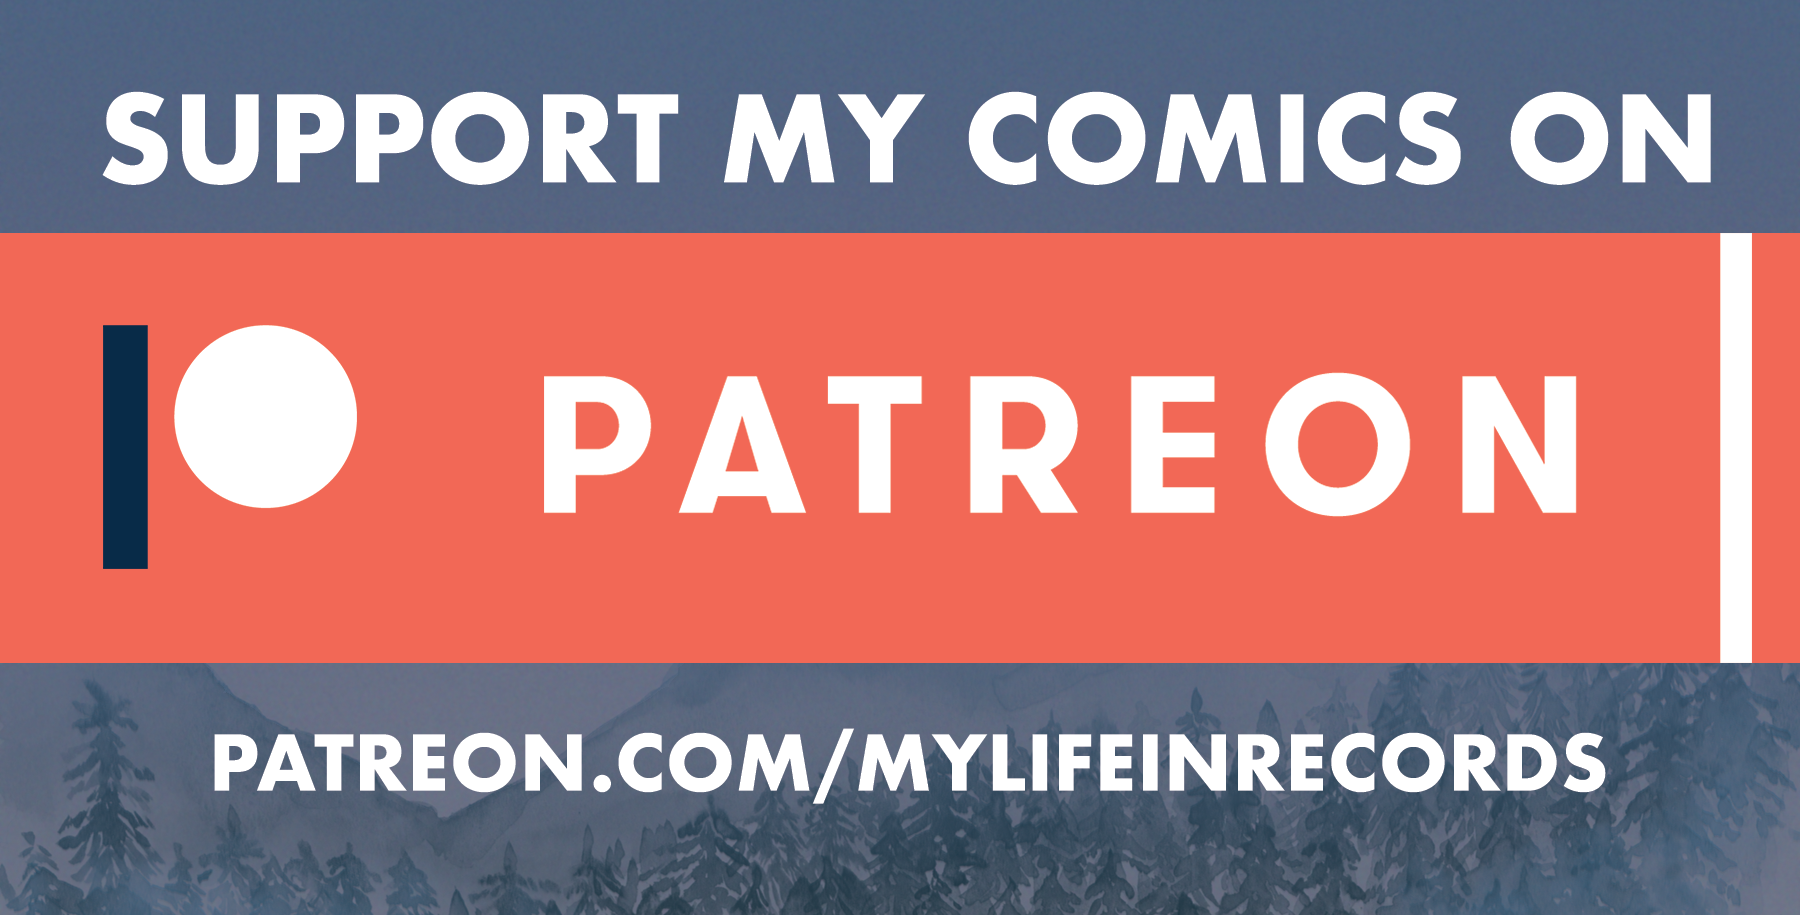 support my comics on patreon